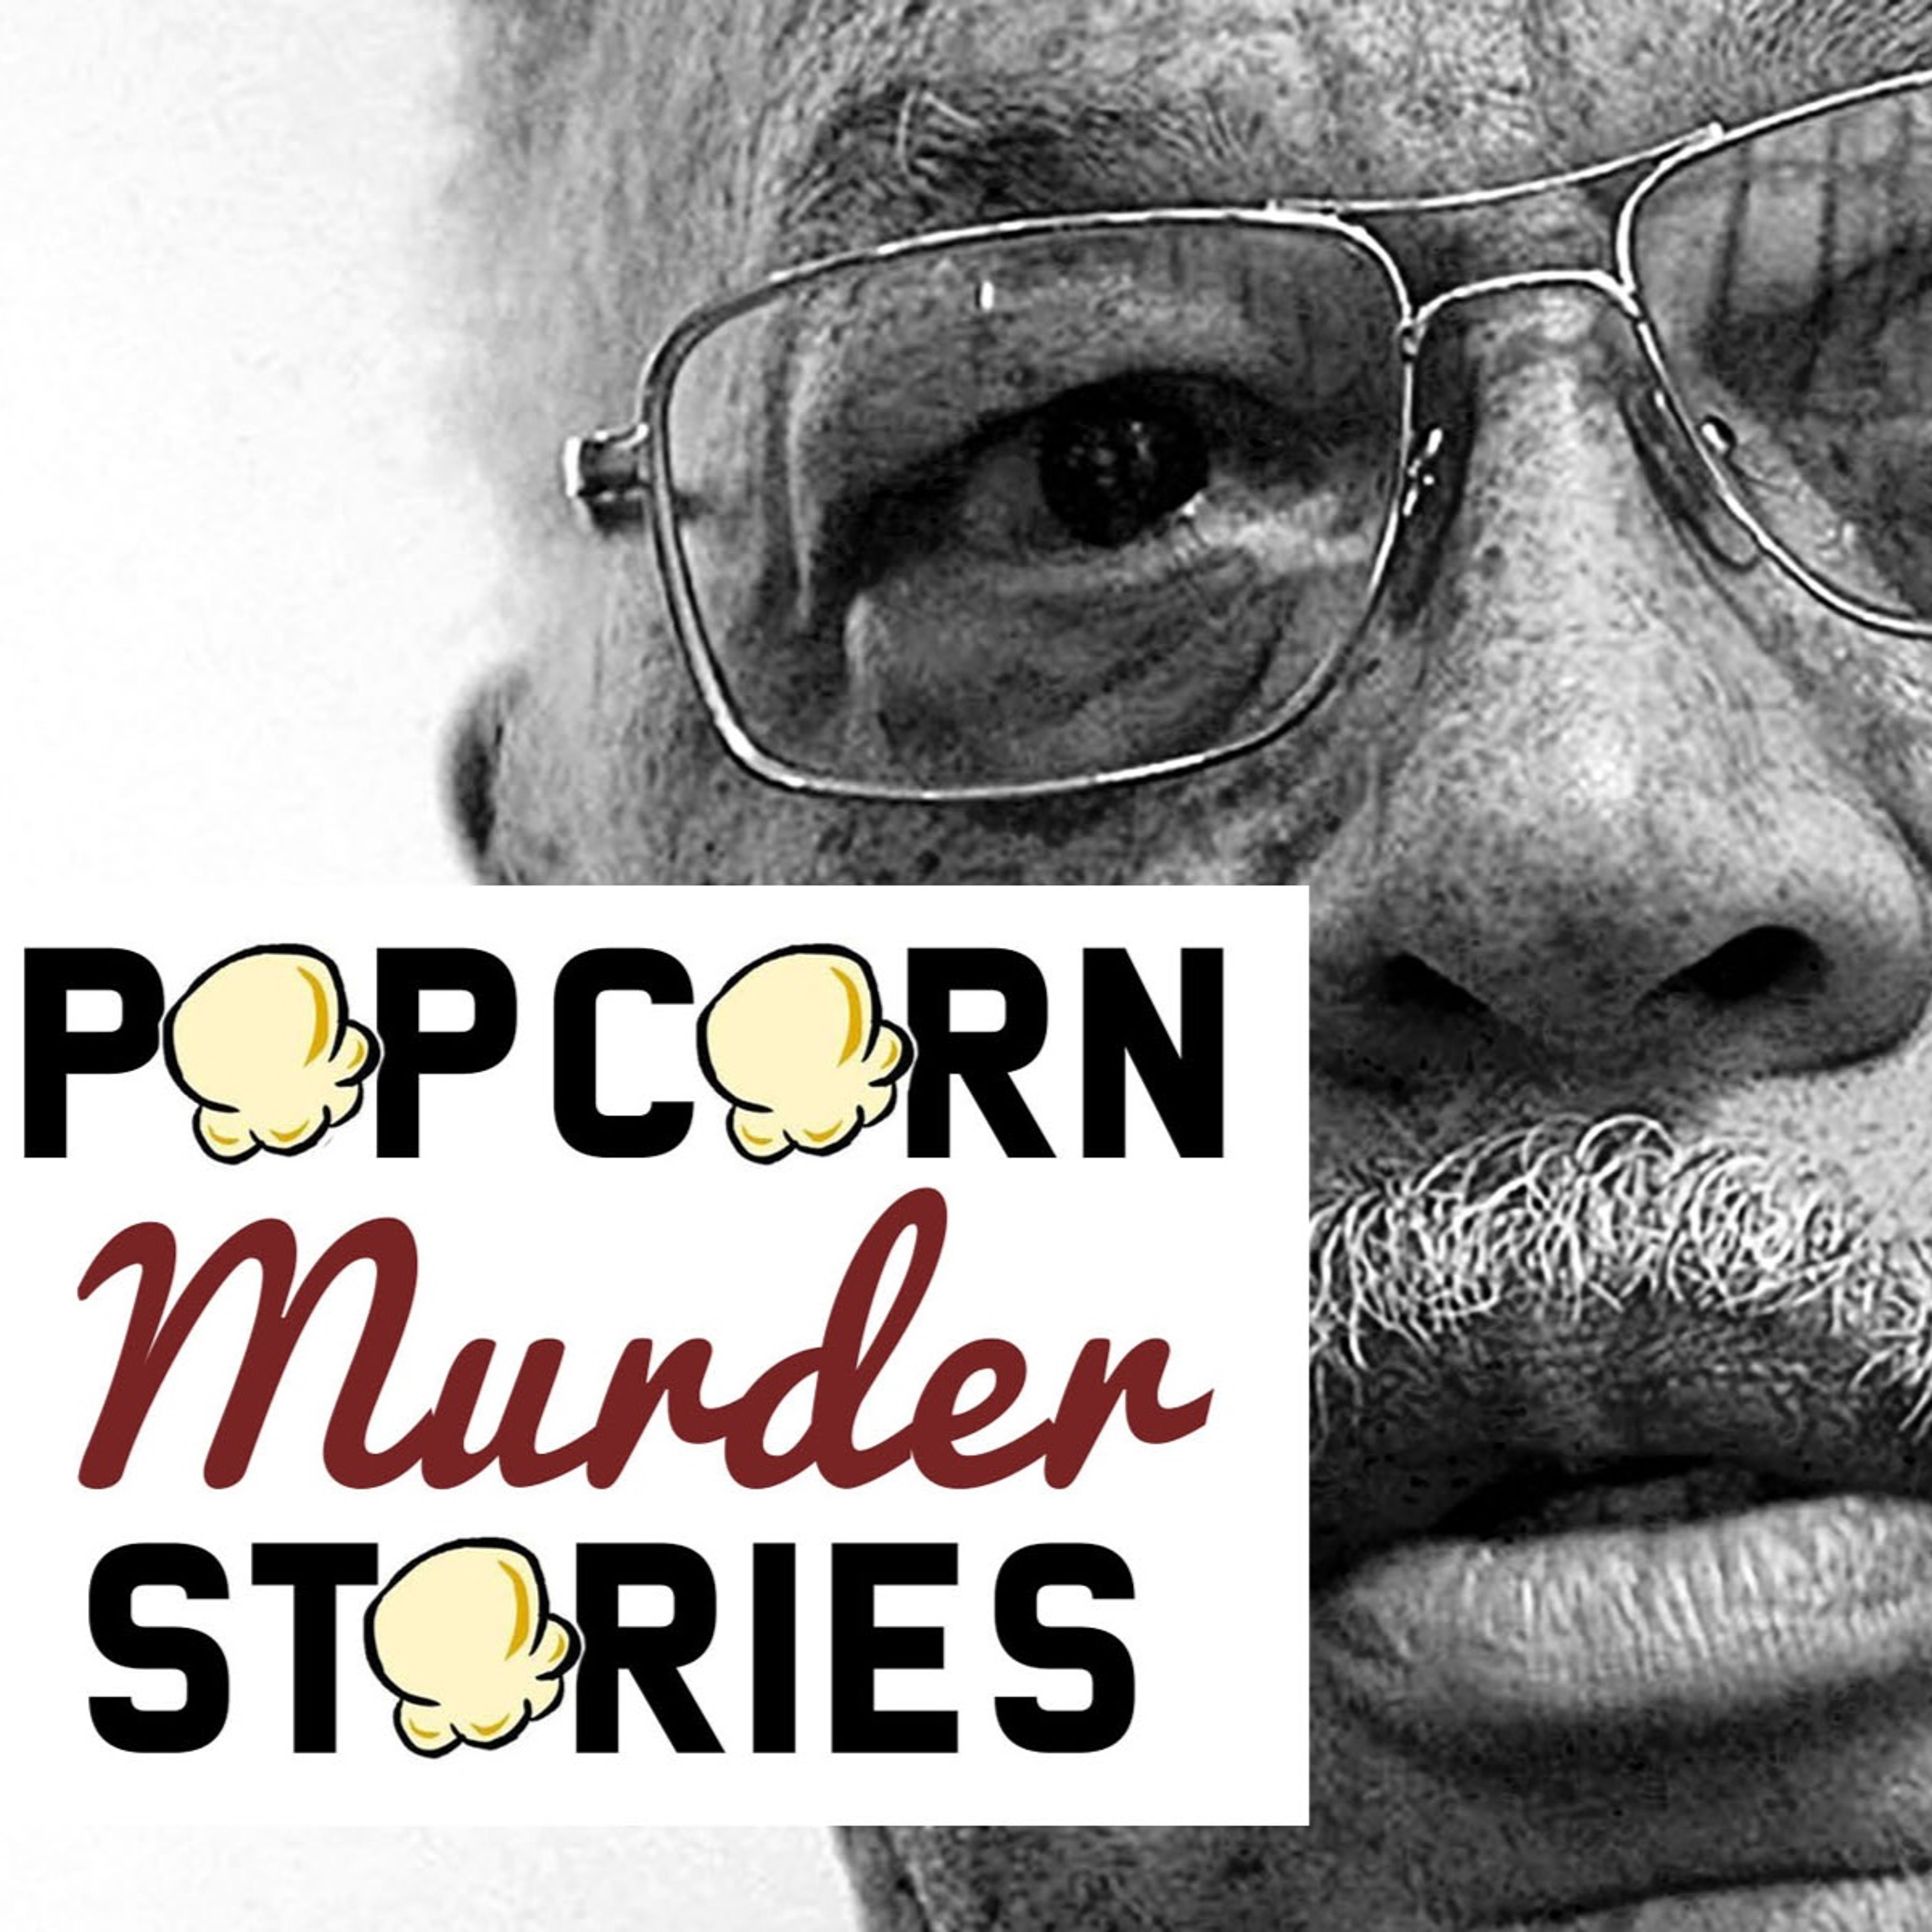 Episode 76: Kermit Gosnell's House of Horrors, Part 1